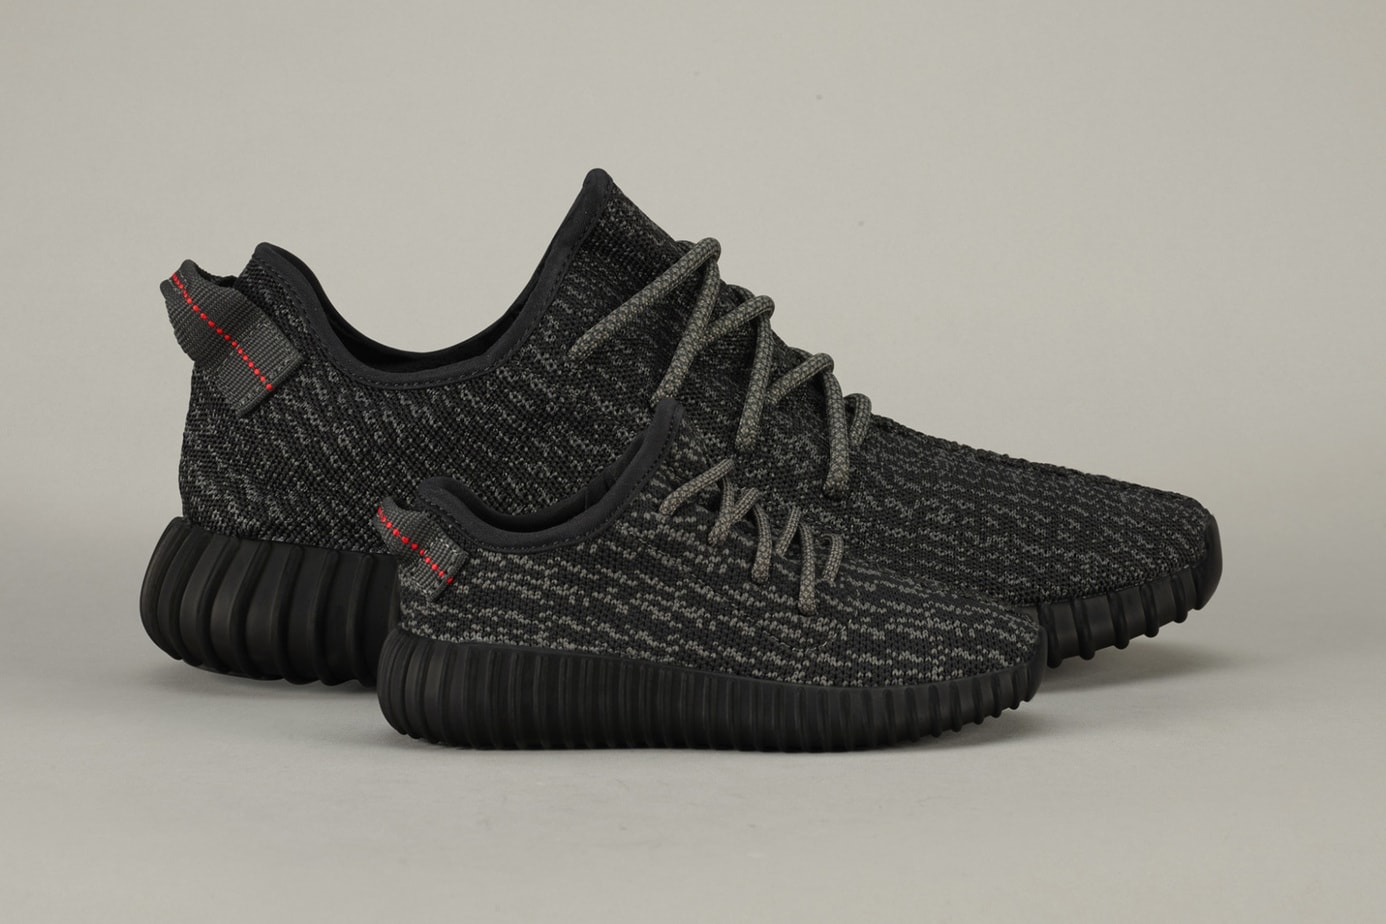 Purchase Adidas yeezy 350 boost low gray uk 77% Off Sale